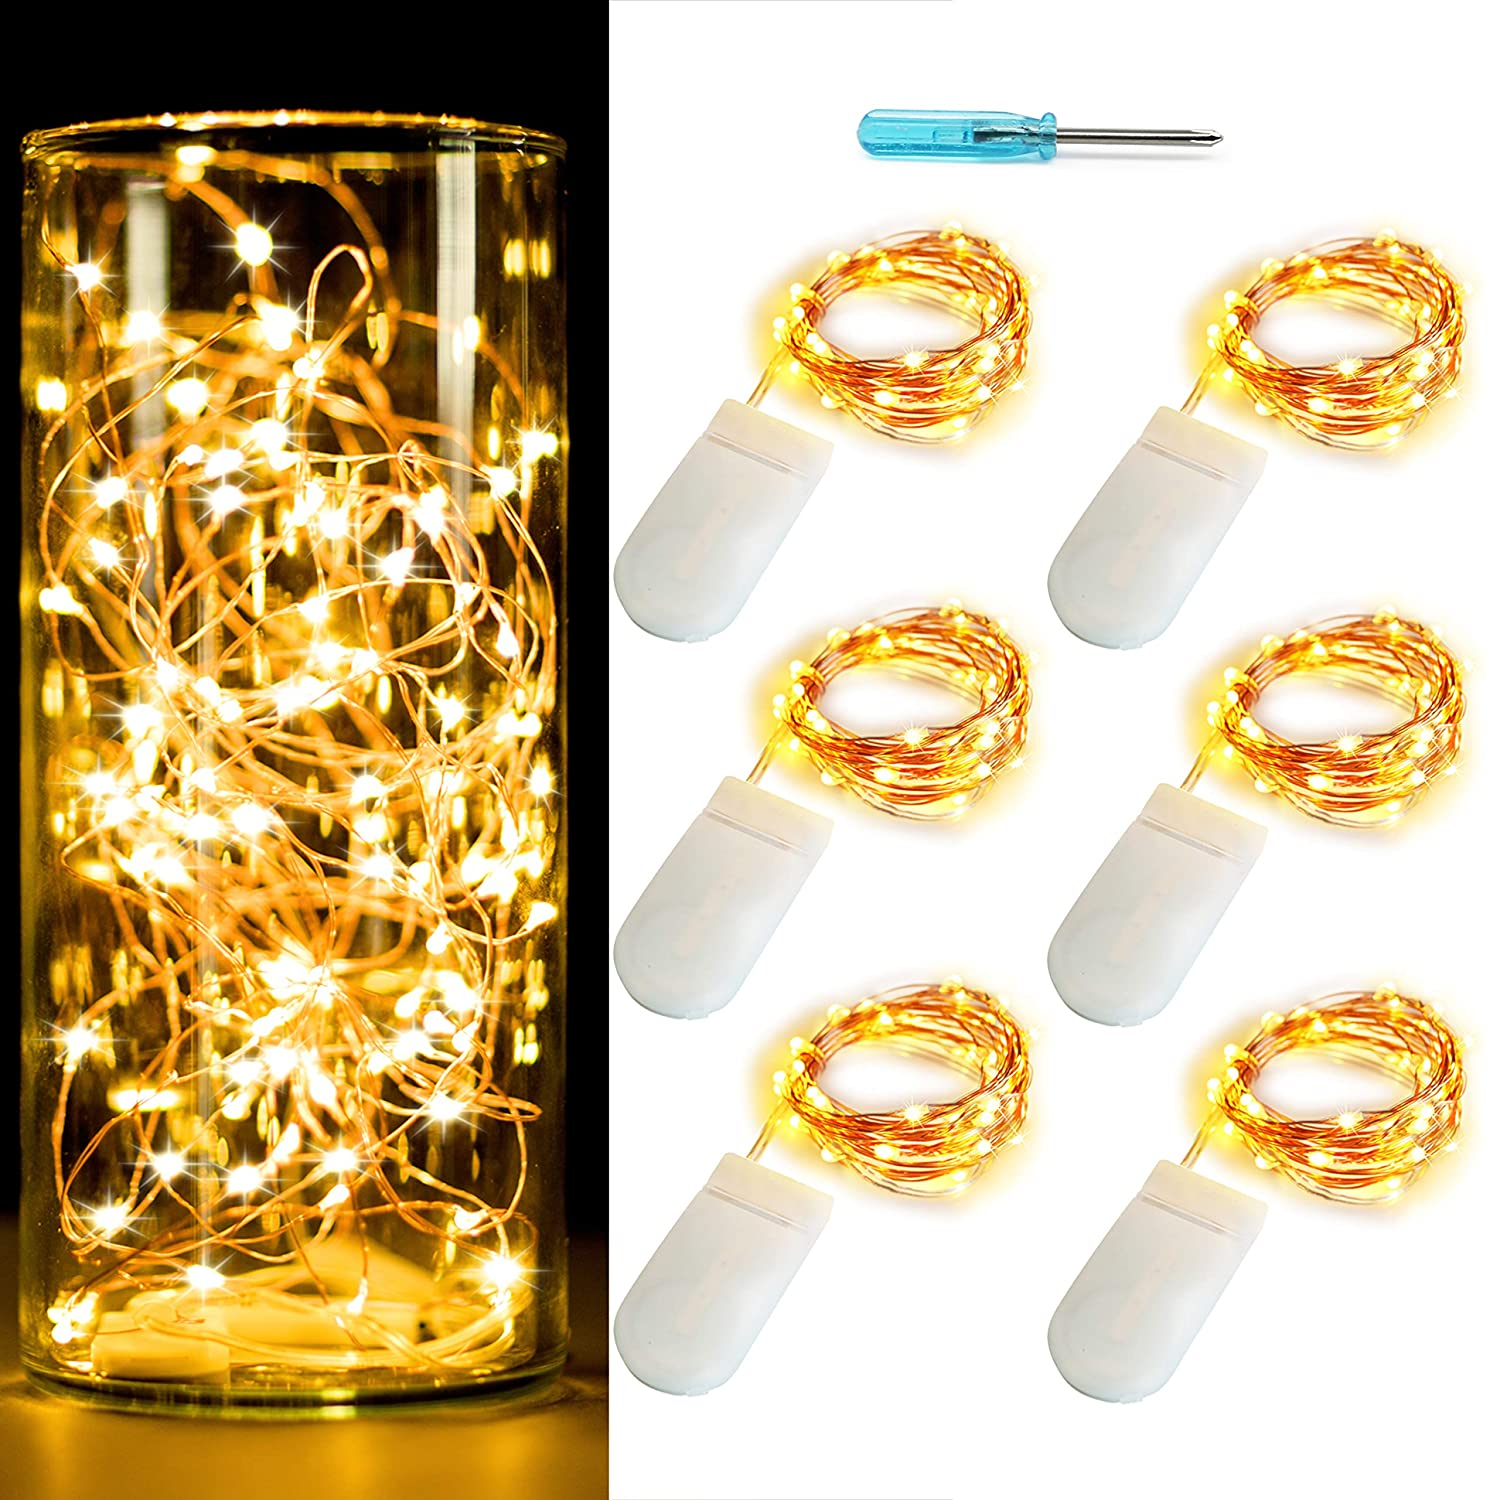 OakHaomie [6-Pack] 10ft(3m) LED Starry String Lights 30 Micro LEDs on Copper Wire,Fairy Lights Battery Powered by 2X CR2032(Included),for DIY Wedding Centerpiece Table Decorations (Rose Gold Warm)